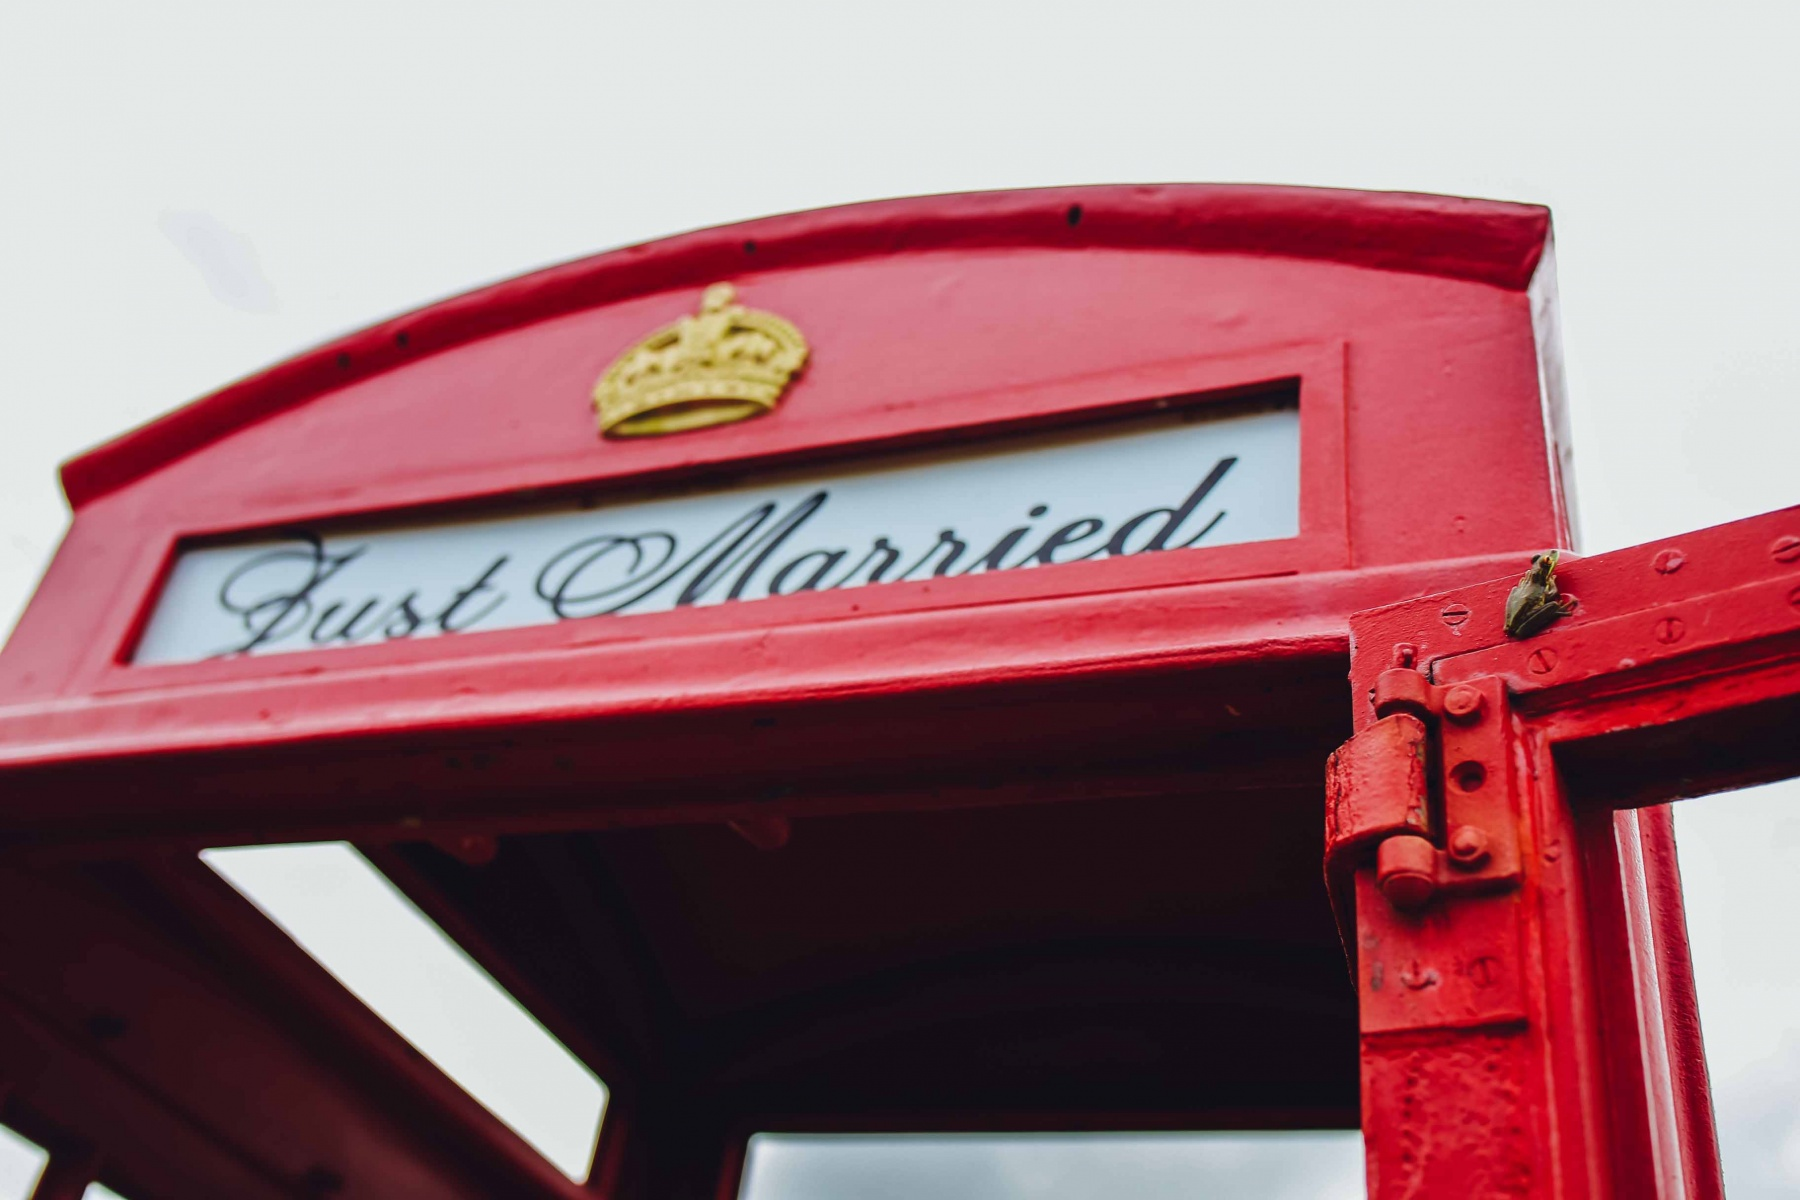 ROYAL-CREST-ROOM-PHONE-BOOTH-GALLERY_090